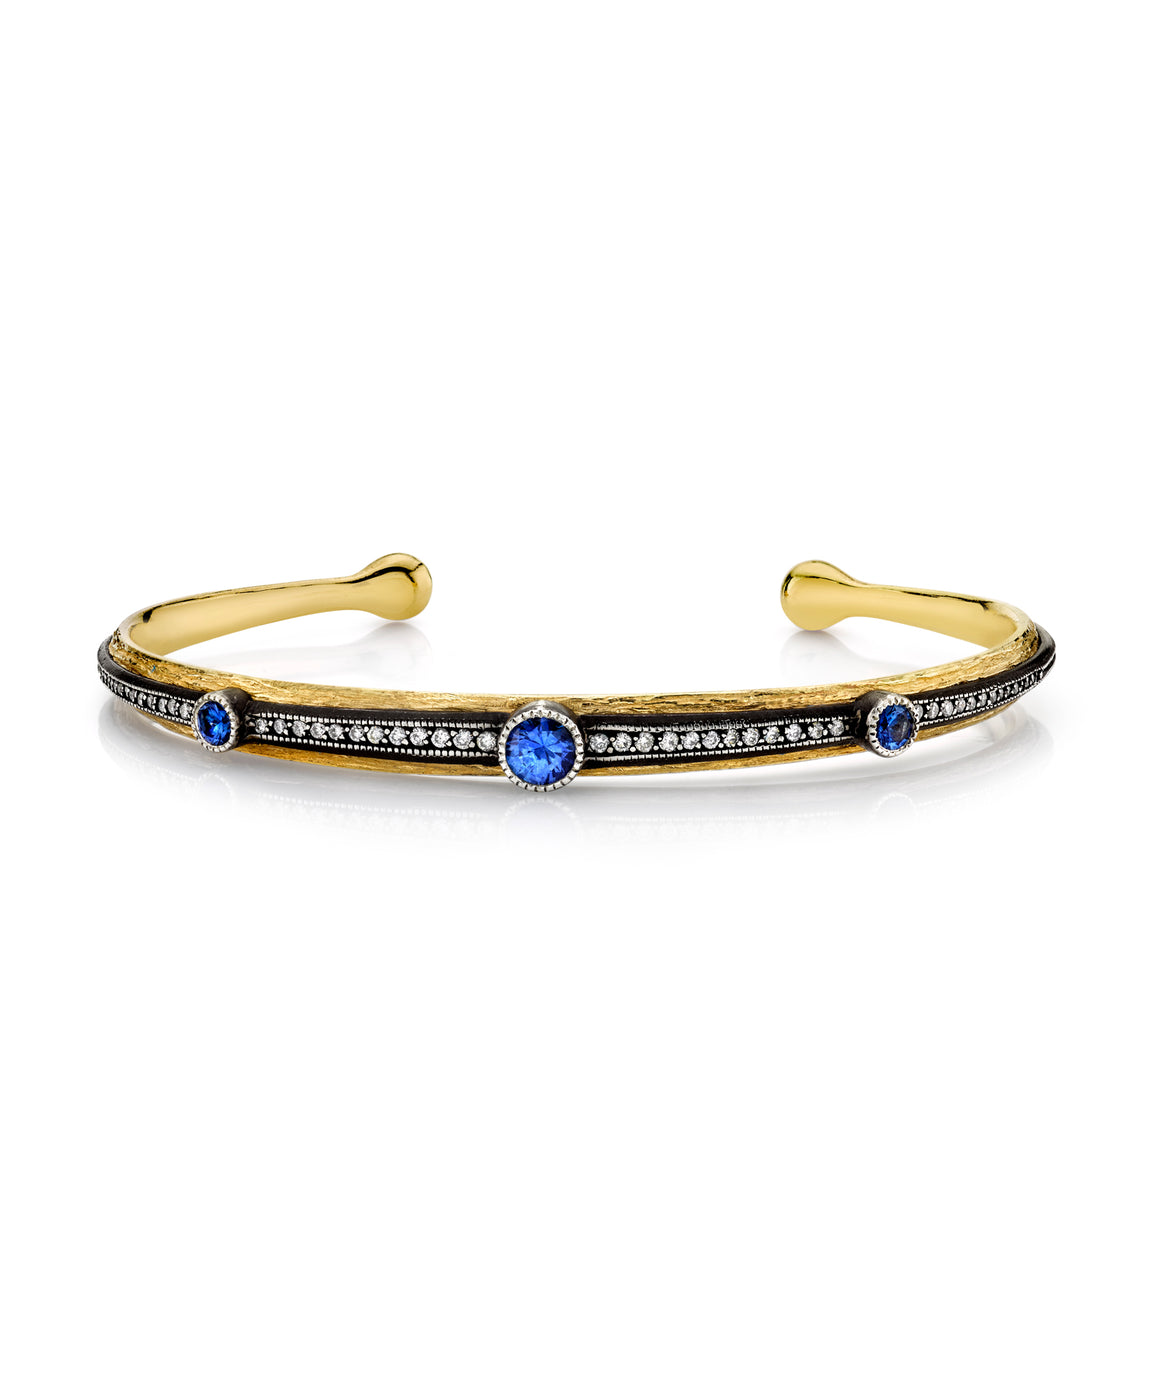 Cuff bracelet with sapphires - Lesley Ann Jewels